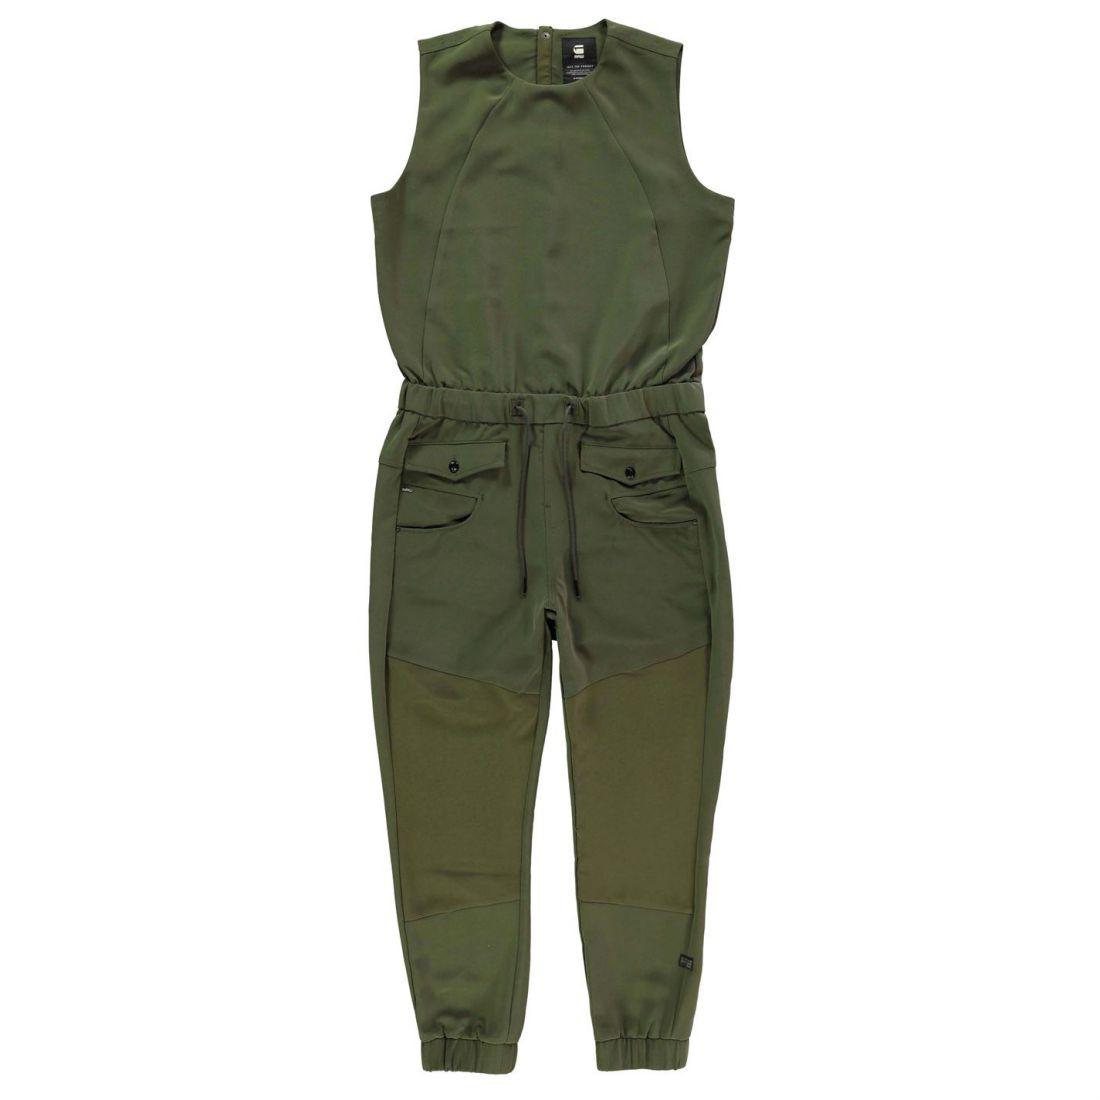 45a8c2c06e9 Image is loading G-Star-Womens-Army-Radar-Jogging-Jumpsuit-Sleeveless-